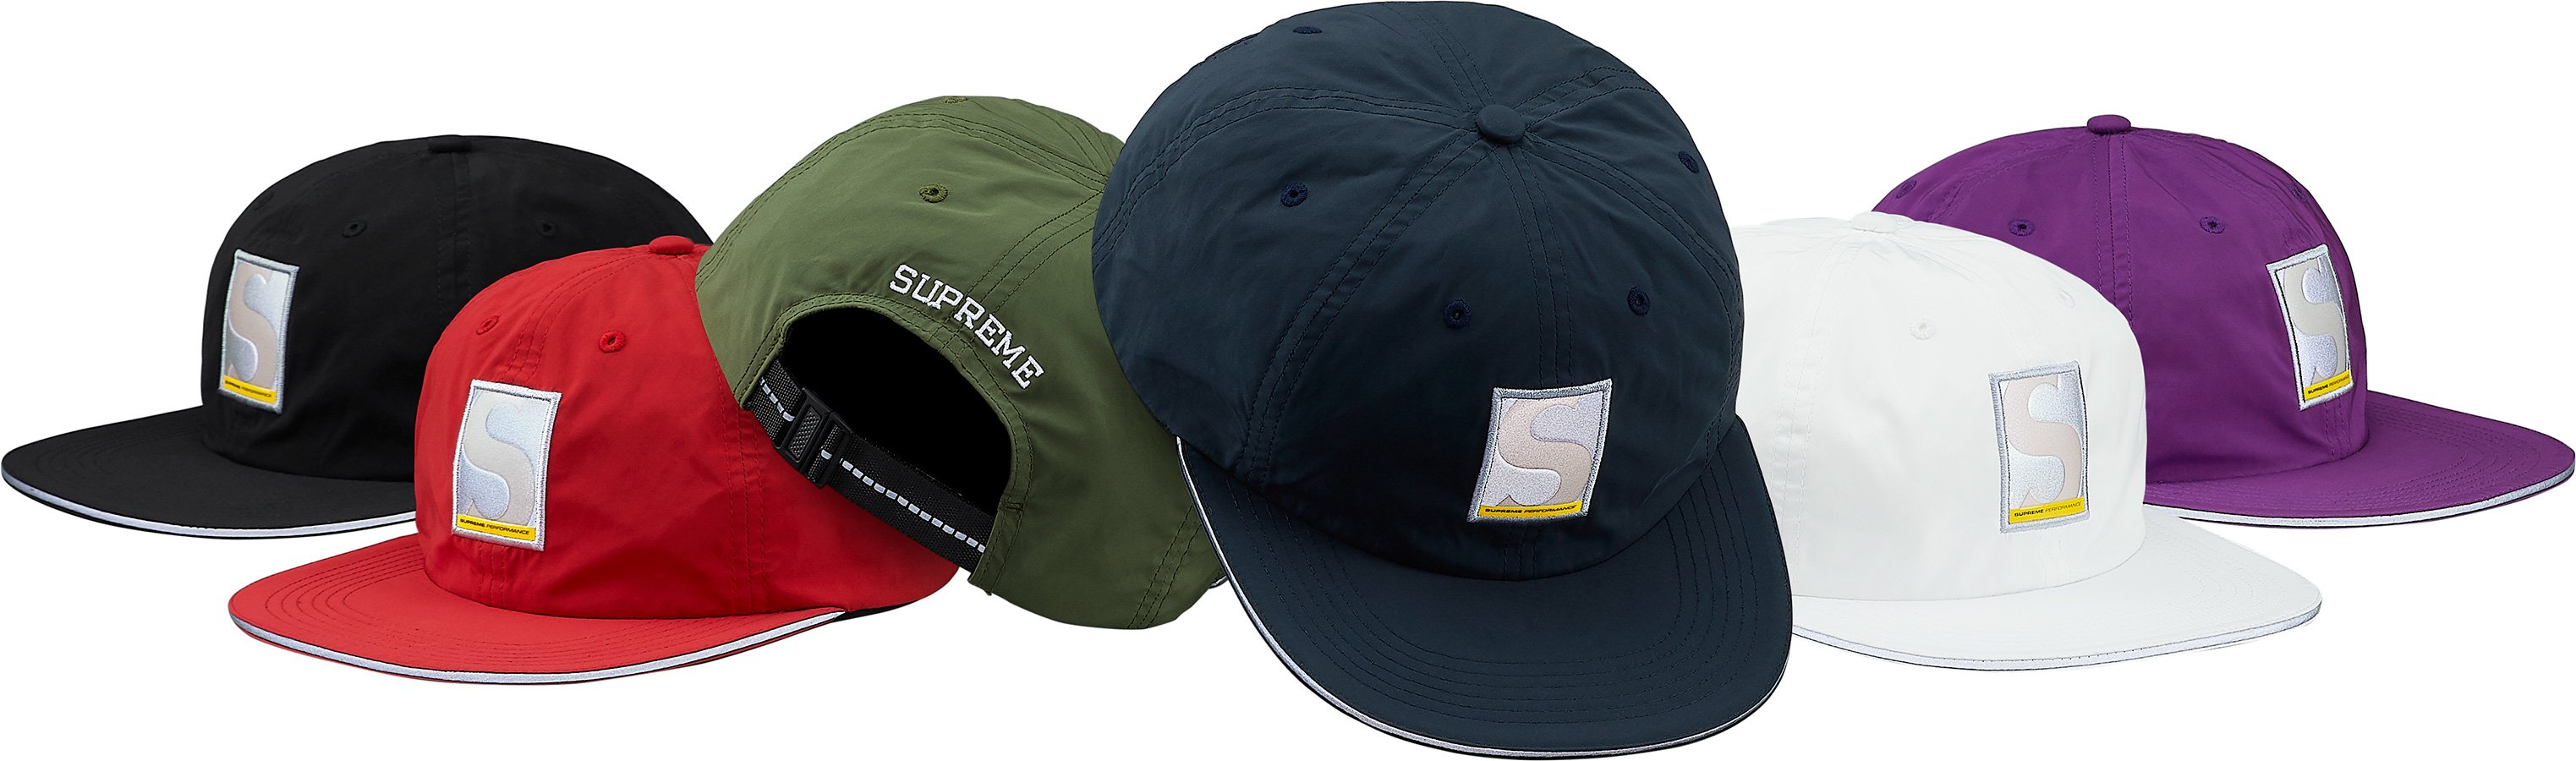 supreme-18aw-fall-winter-performance-nylon-6-panel